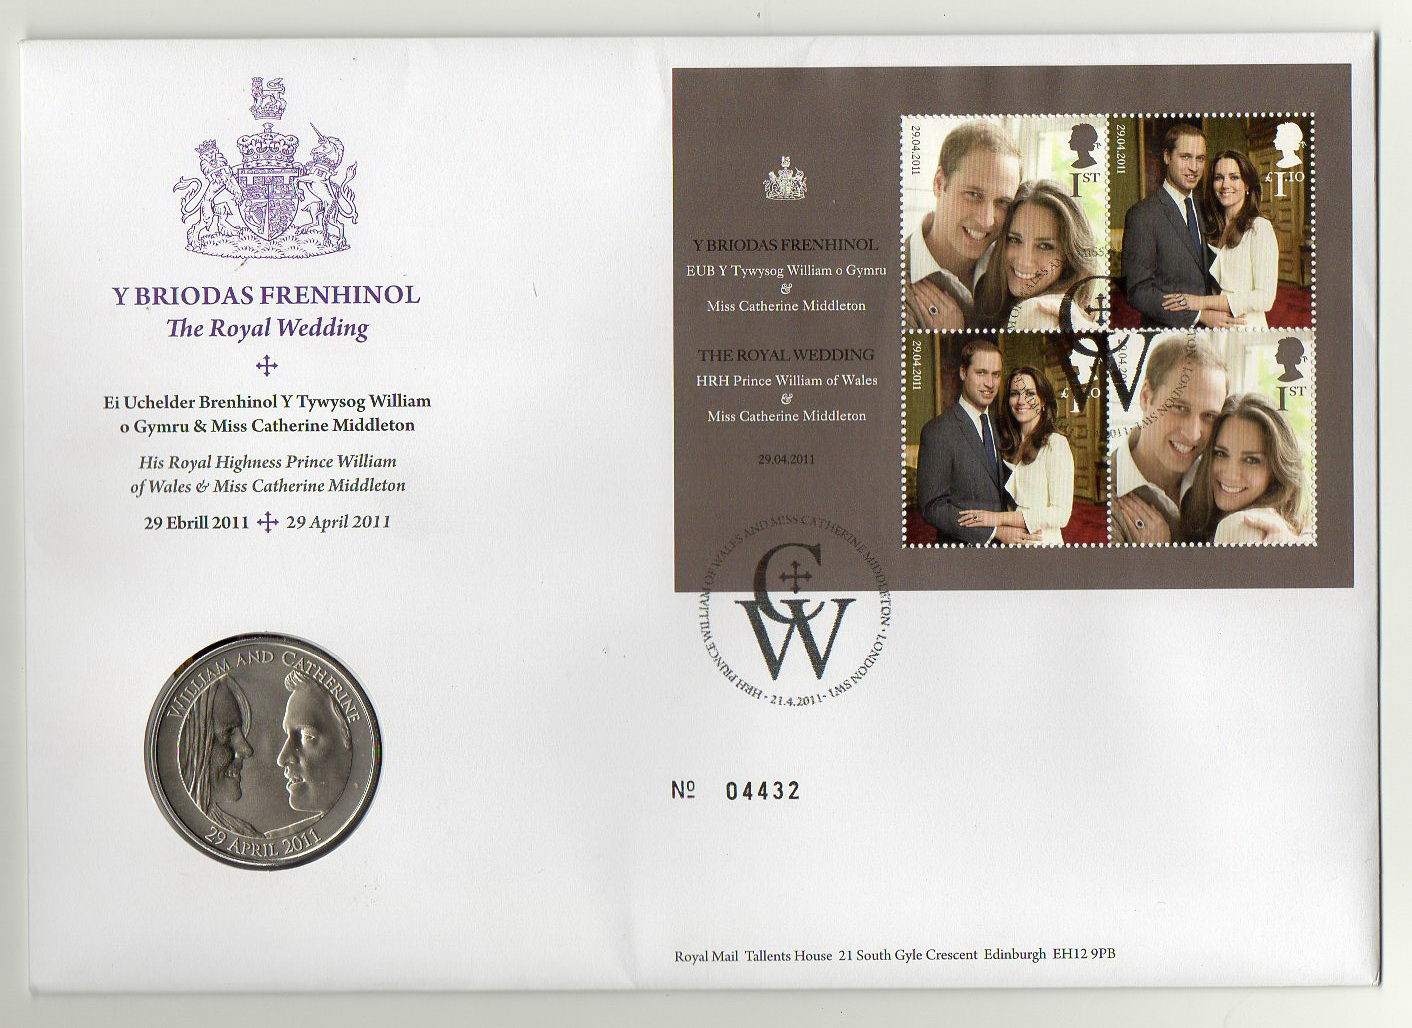 Image for Y Briodas Frenhinol - The Royal Wedding [First Day Cover + 5 pound coin inset in envelope]